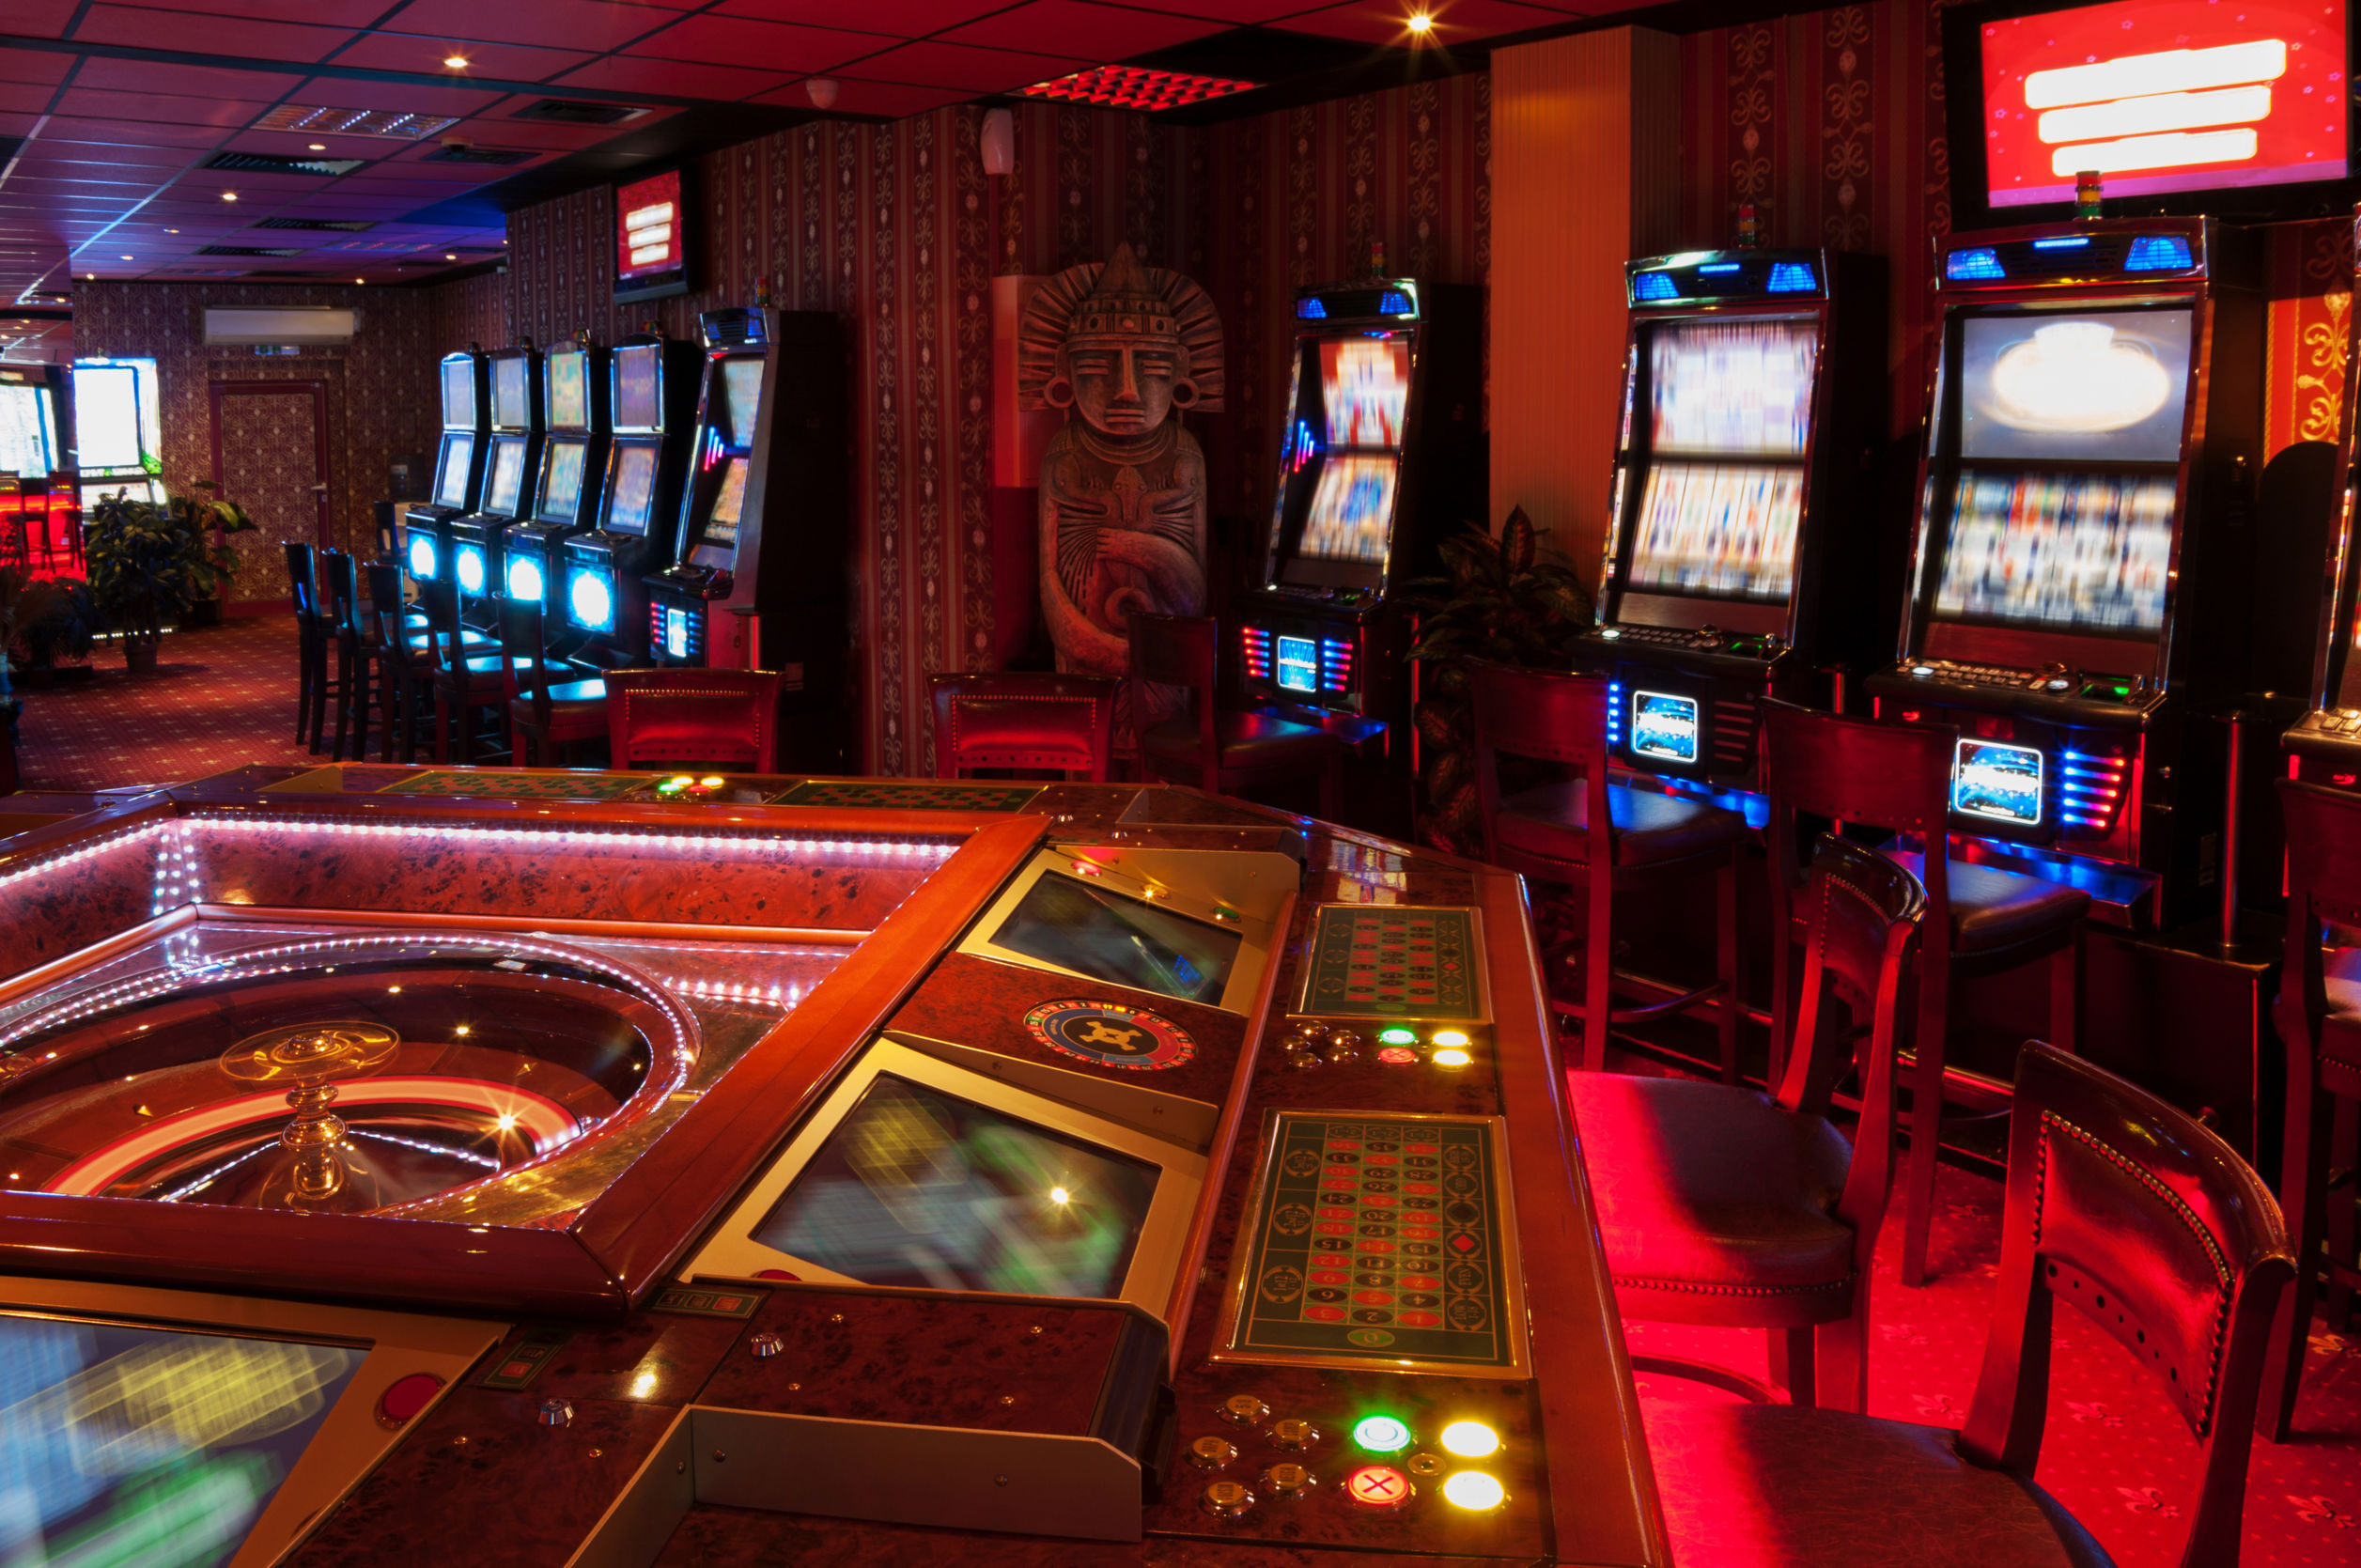 Slot Machine and Roulette